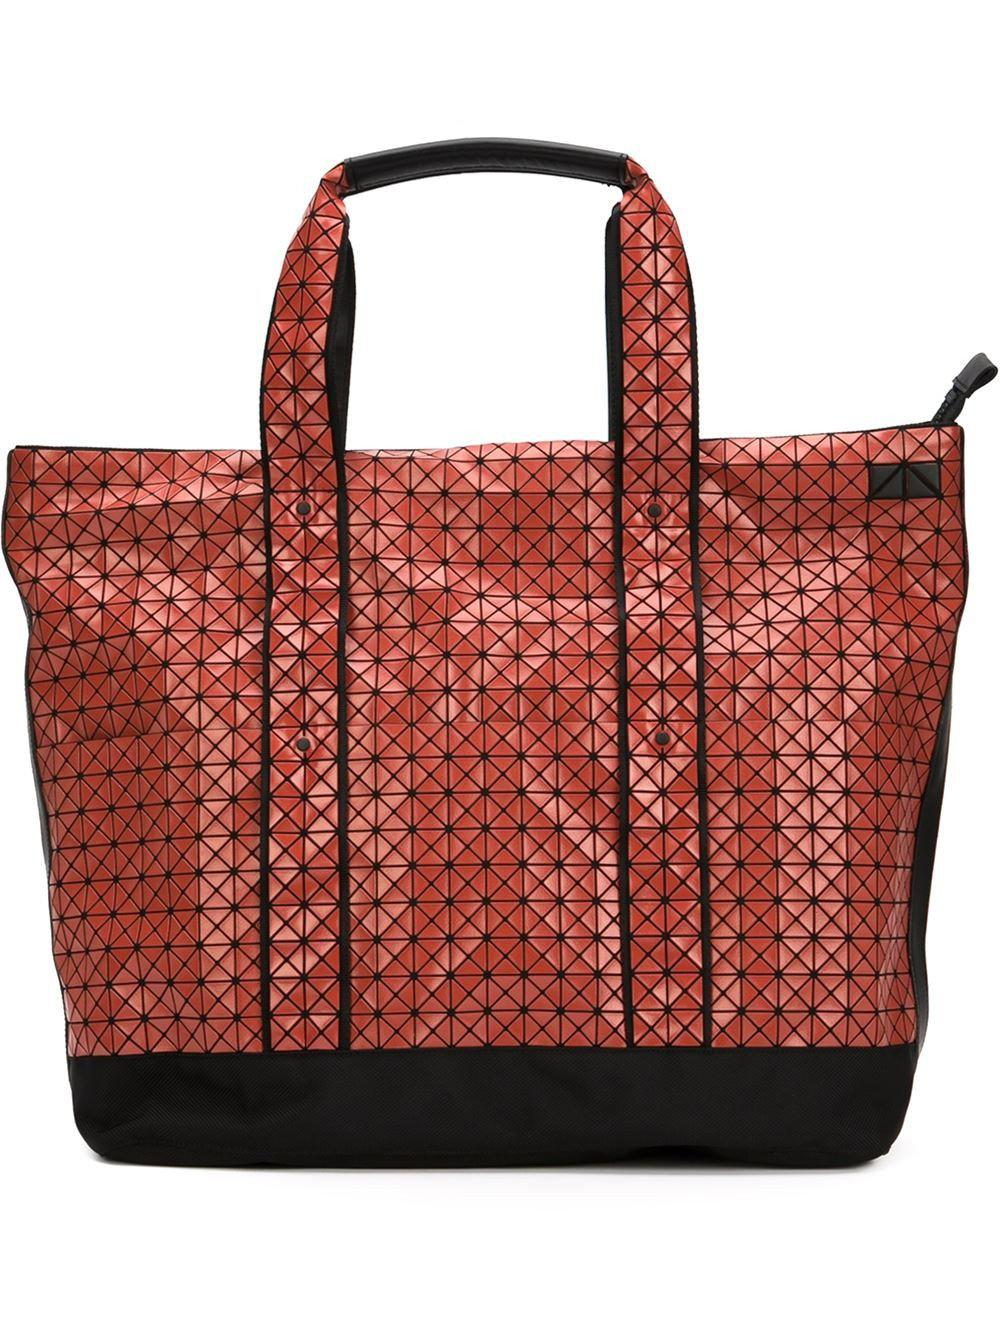 1e36cb8f4d7d ... Lyst - Bao Bao Issey Miyake Weekender Bag in Red best loved 97083 07125  ...